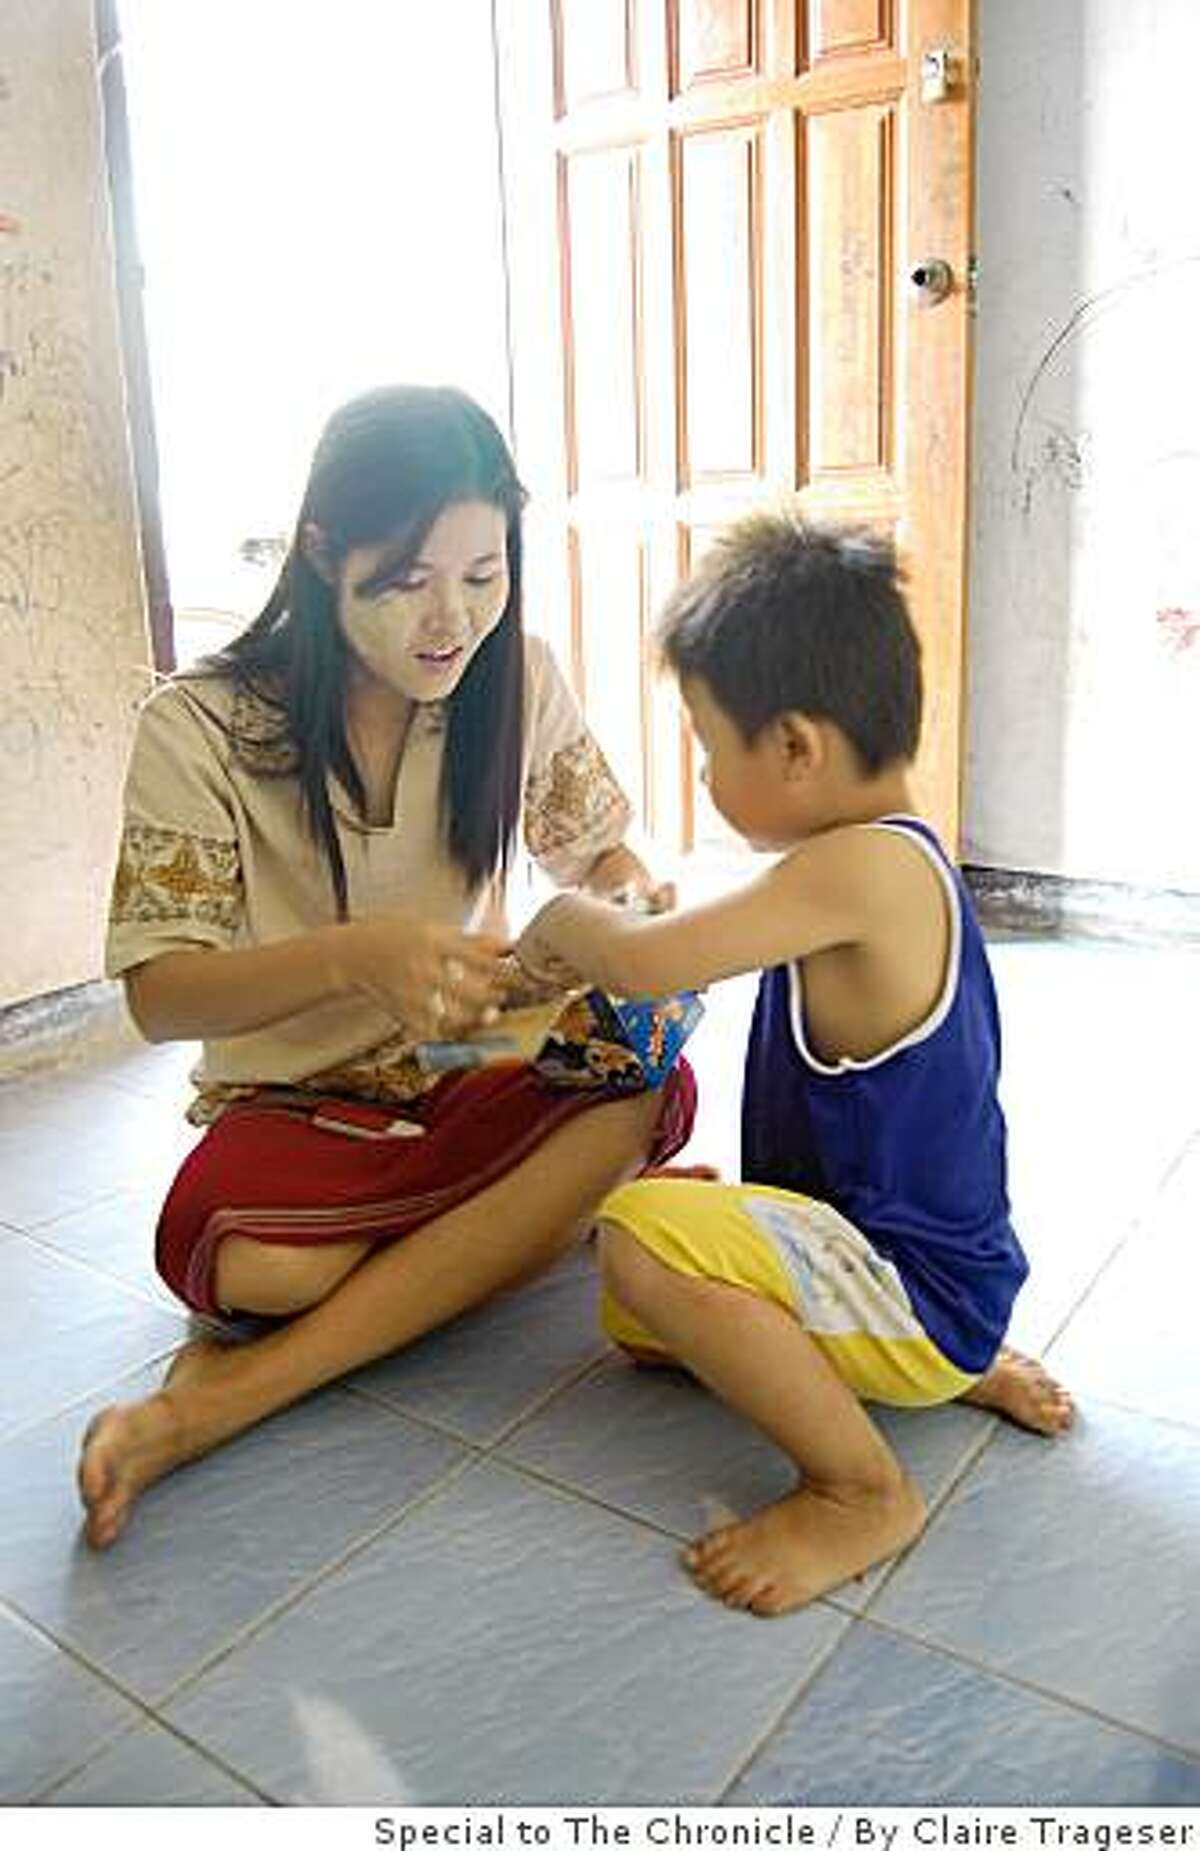 Nid Paw, a Burmese refugee who hopes to settle in the United States this year, unwraps a new toy for her son, Saw, as they sit on the floor of their apartment in Mae Sot, Thailand.